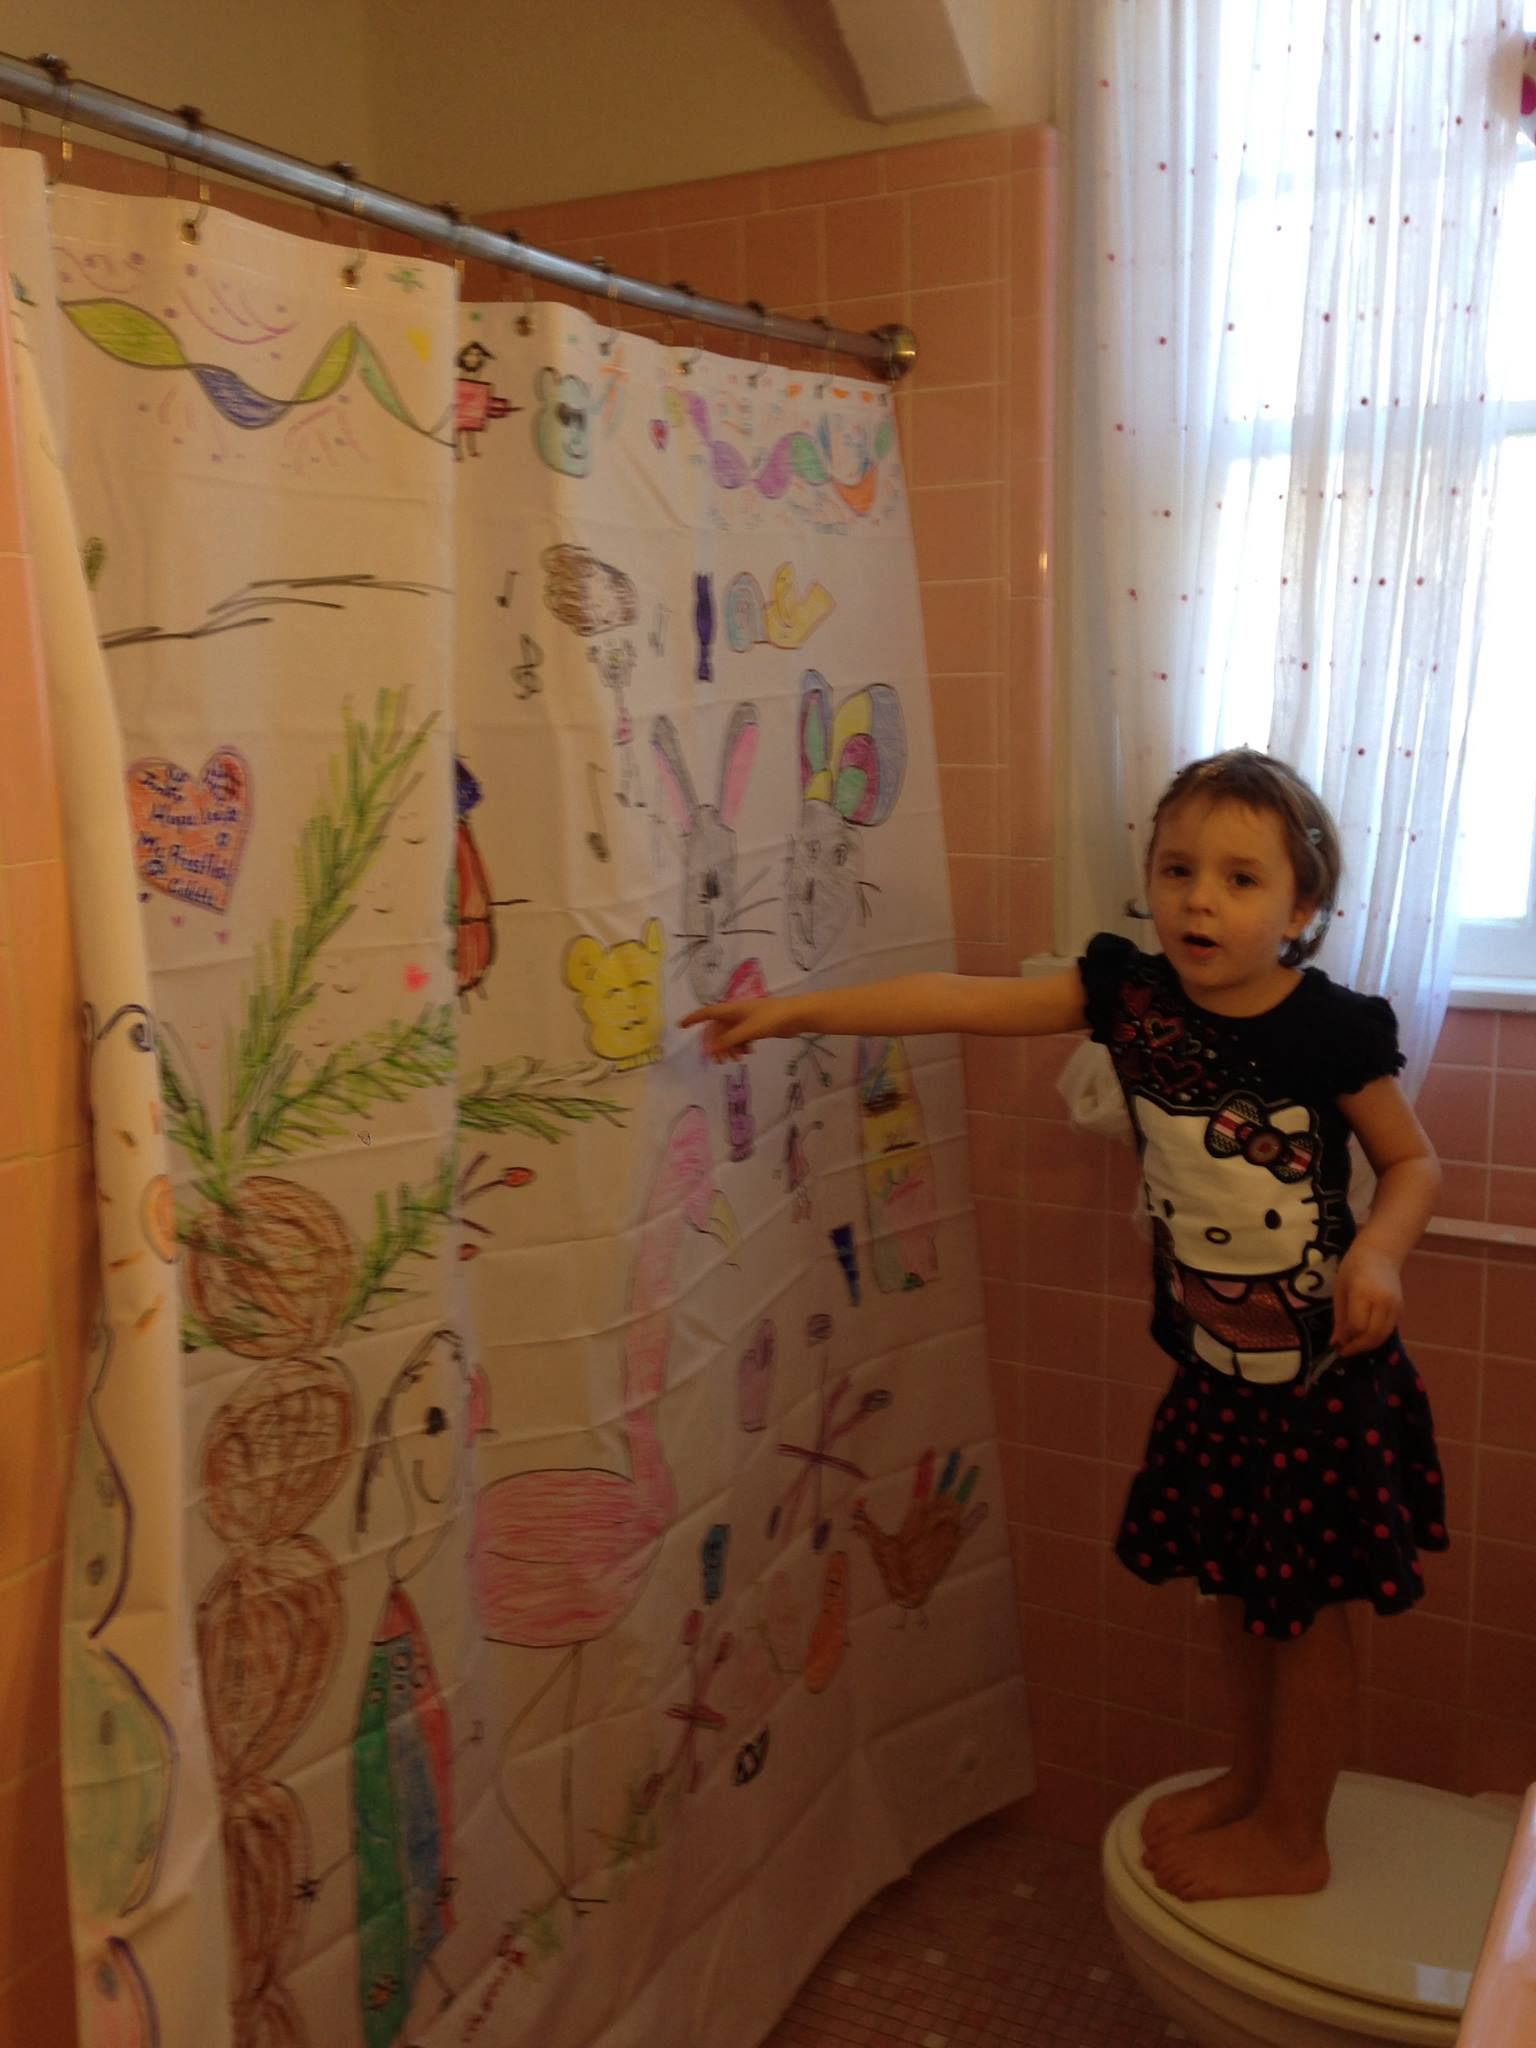 Shower Curtain Art Done With Sharpies On A Plain Plastic Shower